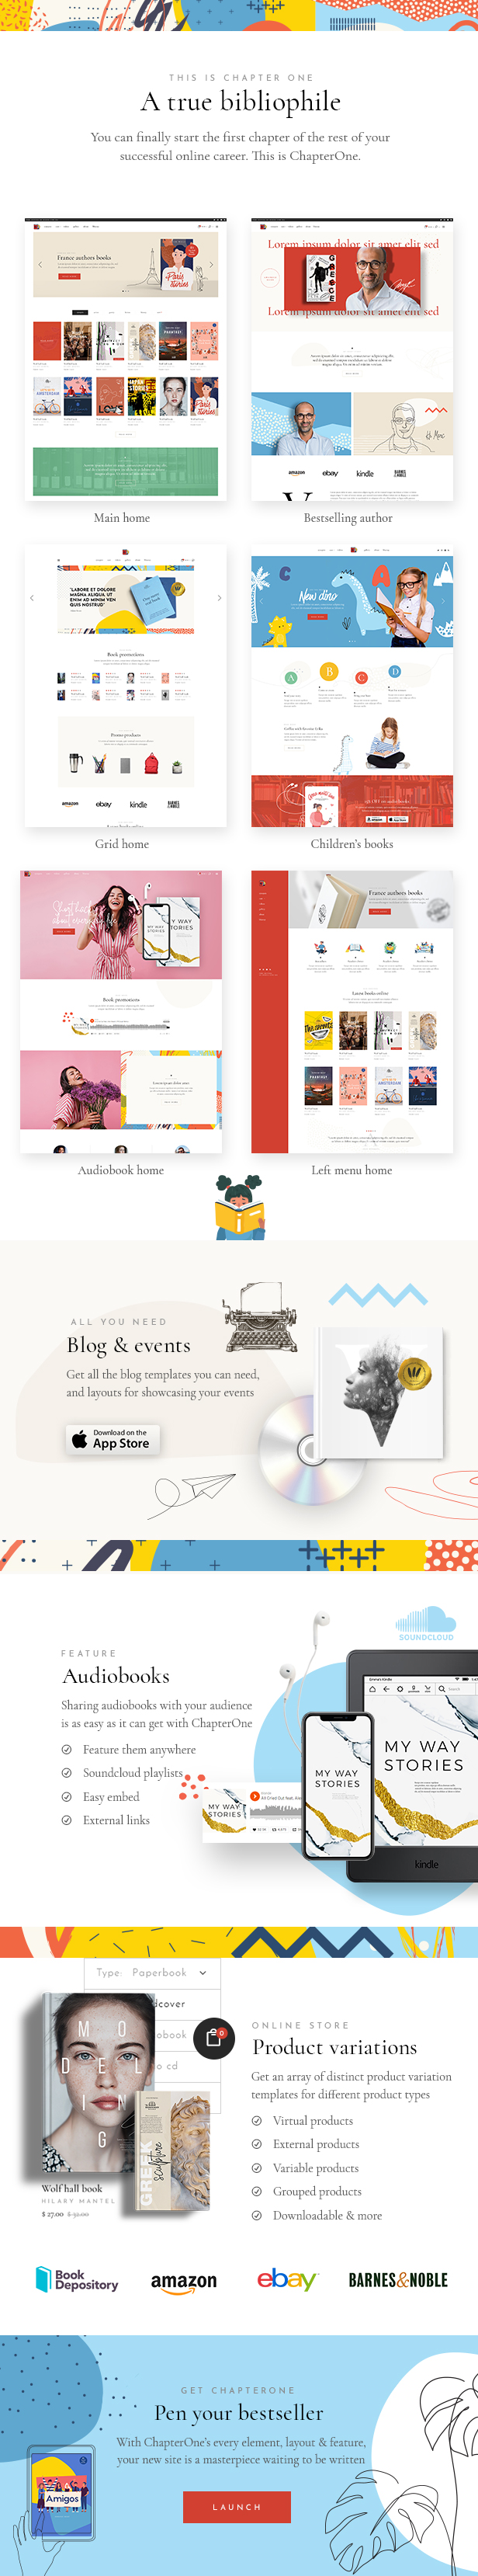 ChapterOne - Bookstore and Publisher Theme - 1